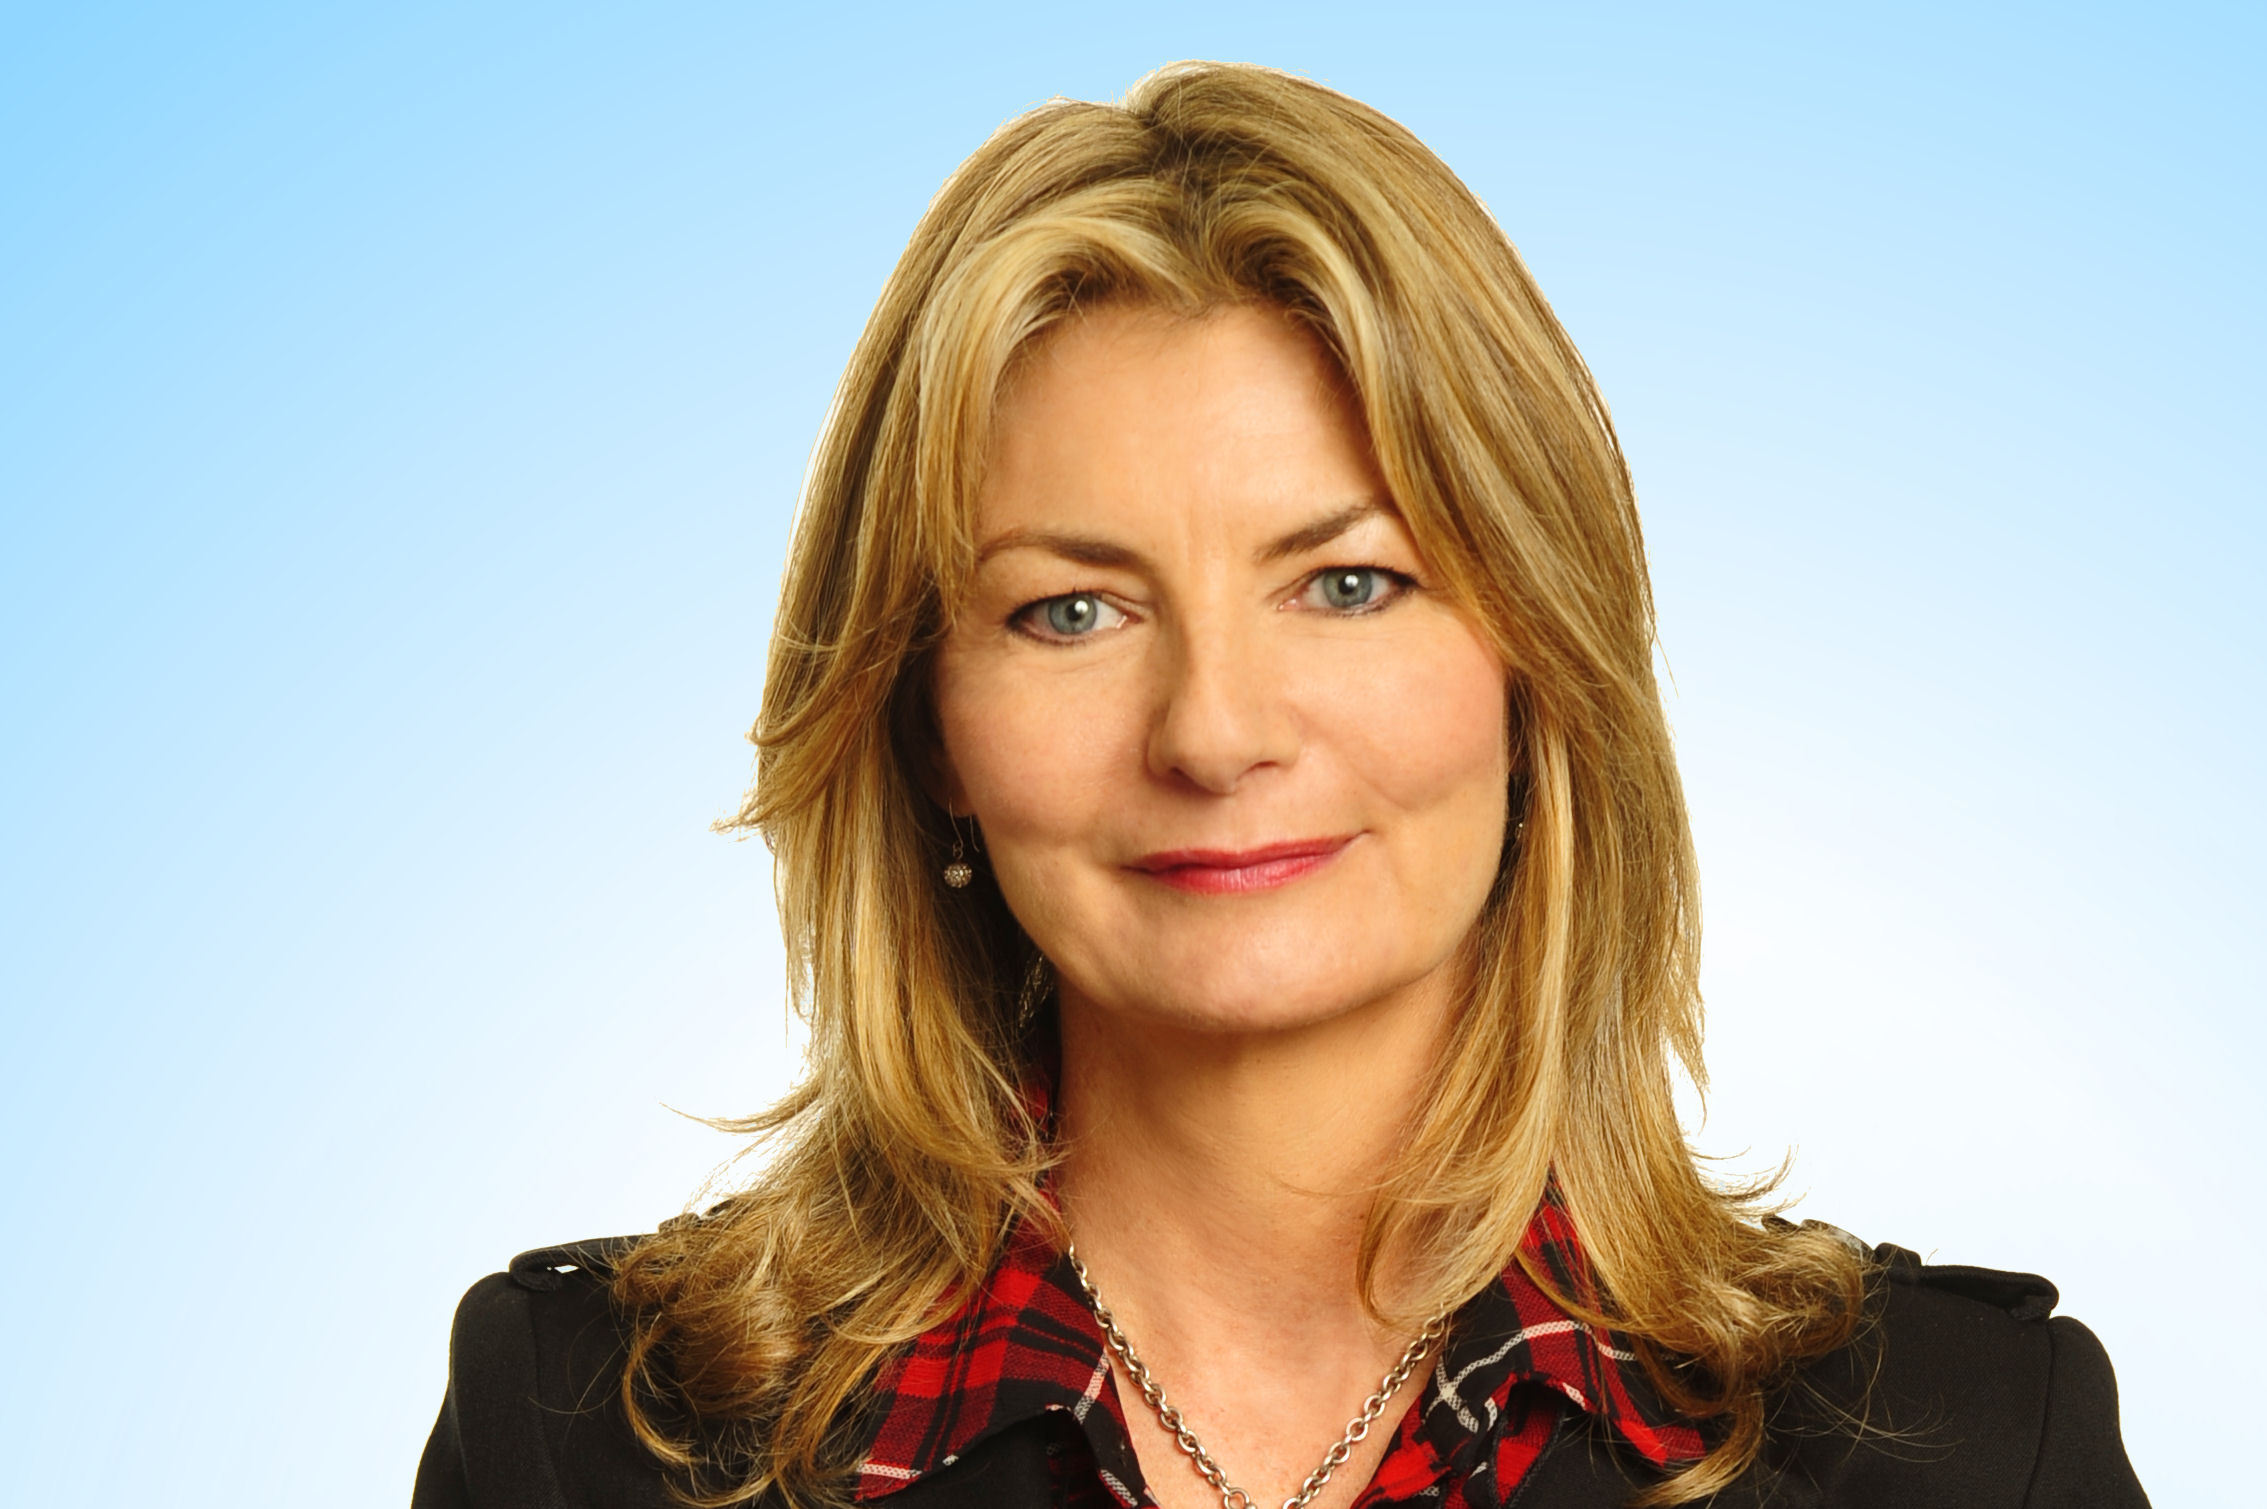 Comedian Jo Caulfield hits town next month with her brand new show Celebration of Anger.